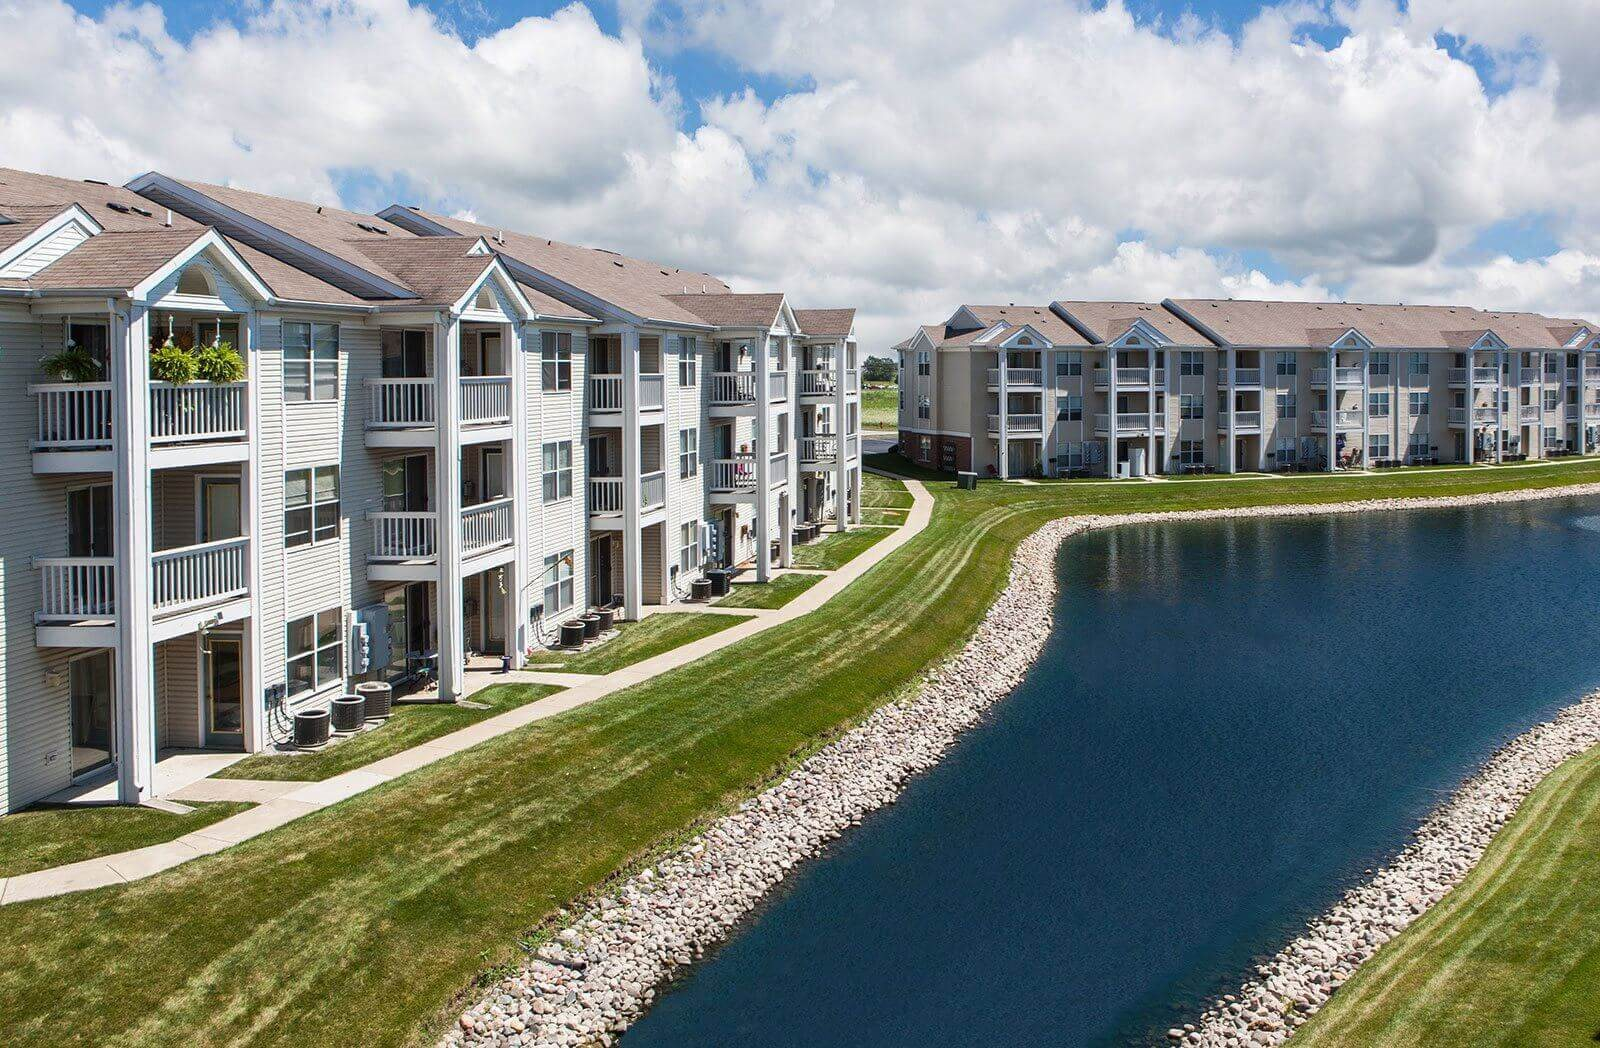 24 Hour Emergency Maintenance Service at Mallard Bay Apartments, Crown Point, IN